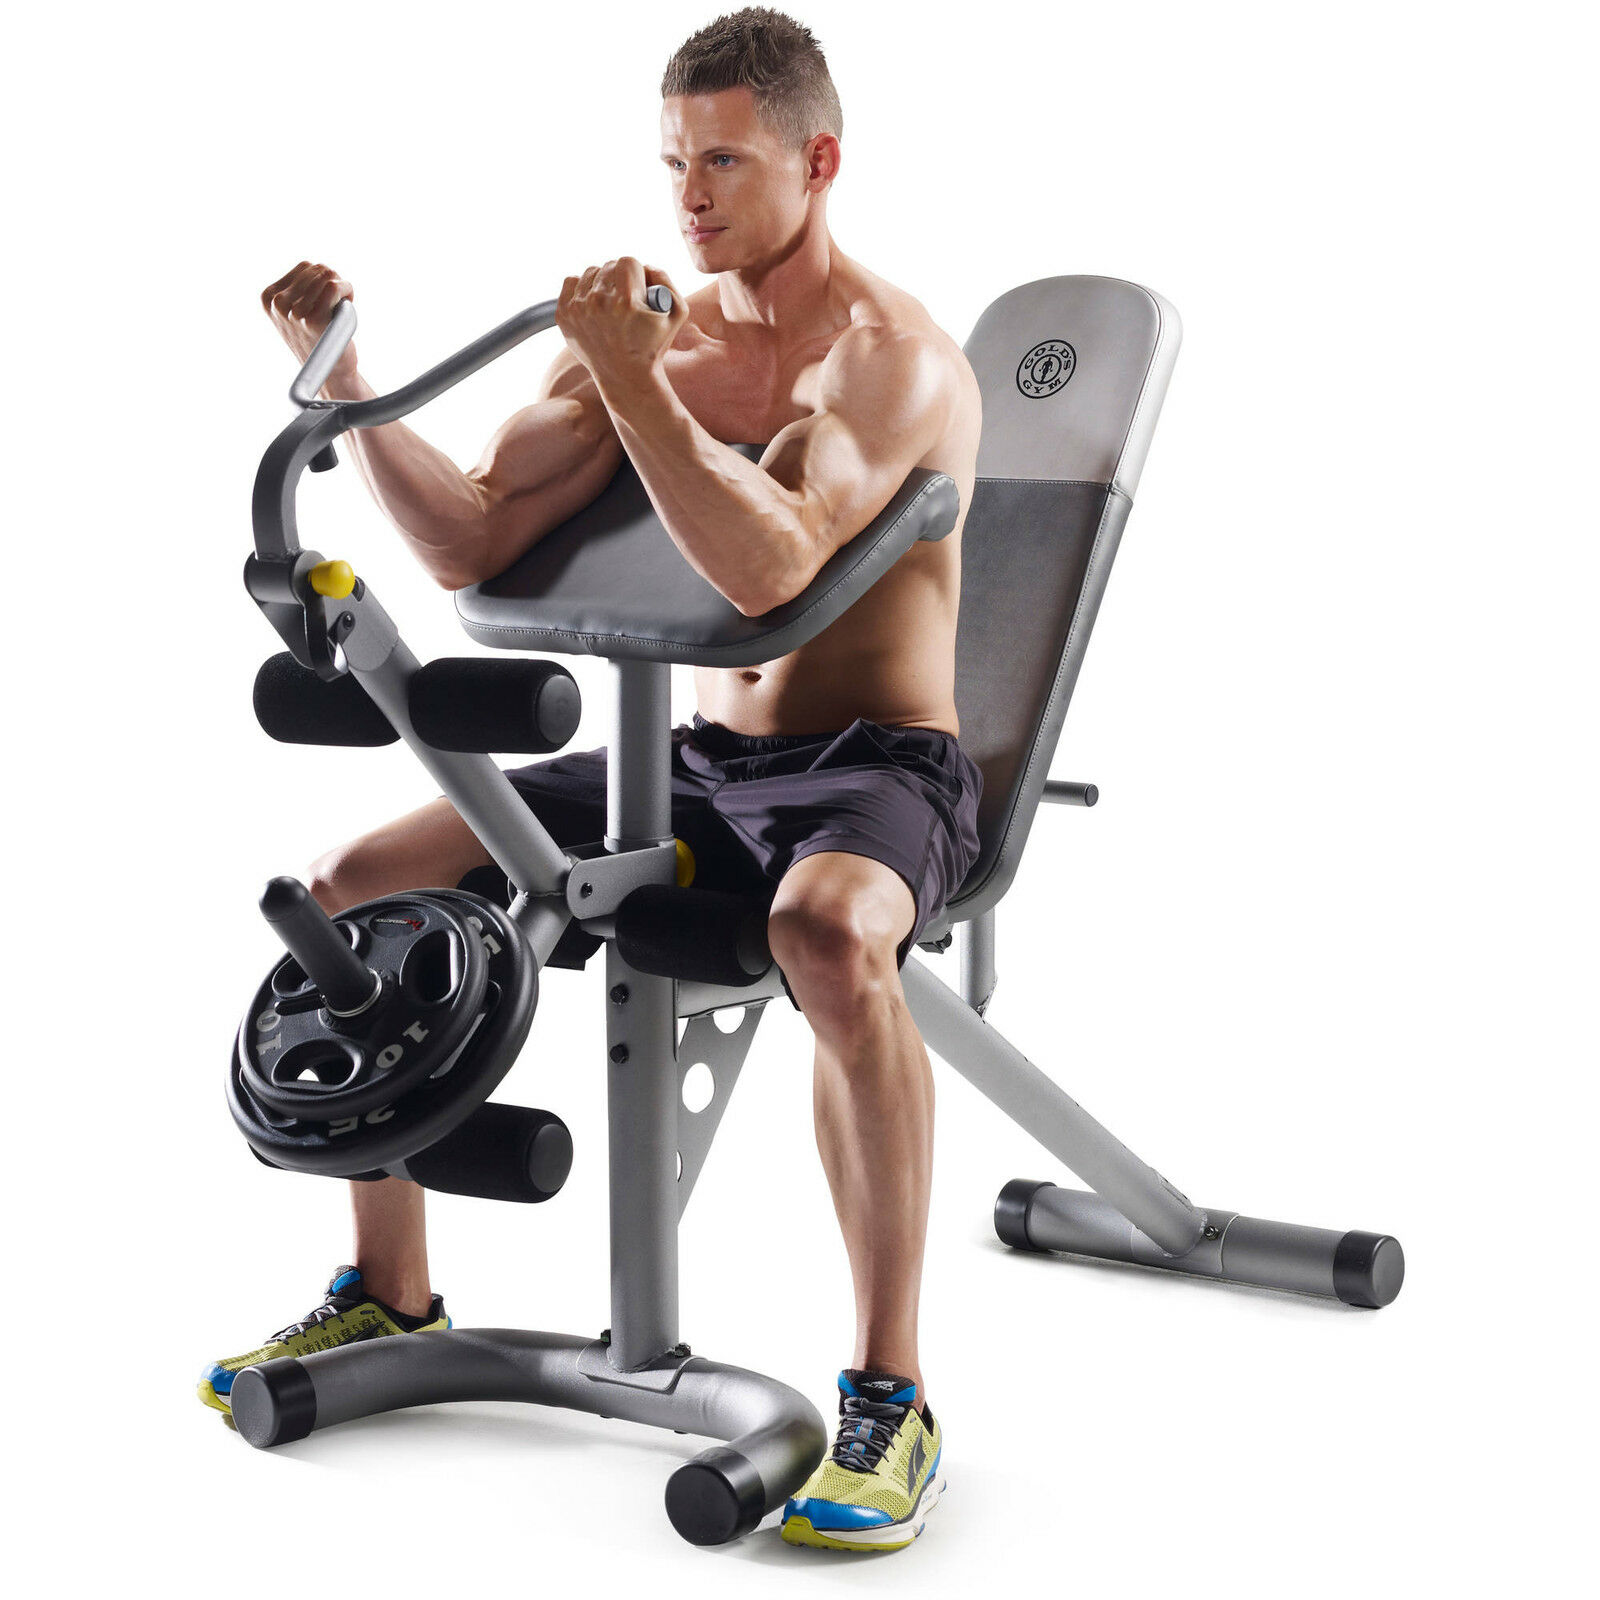 Akonza 45 Degree Hyperextension Roman Chair Back Exercise AB Bench